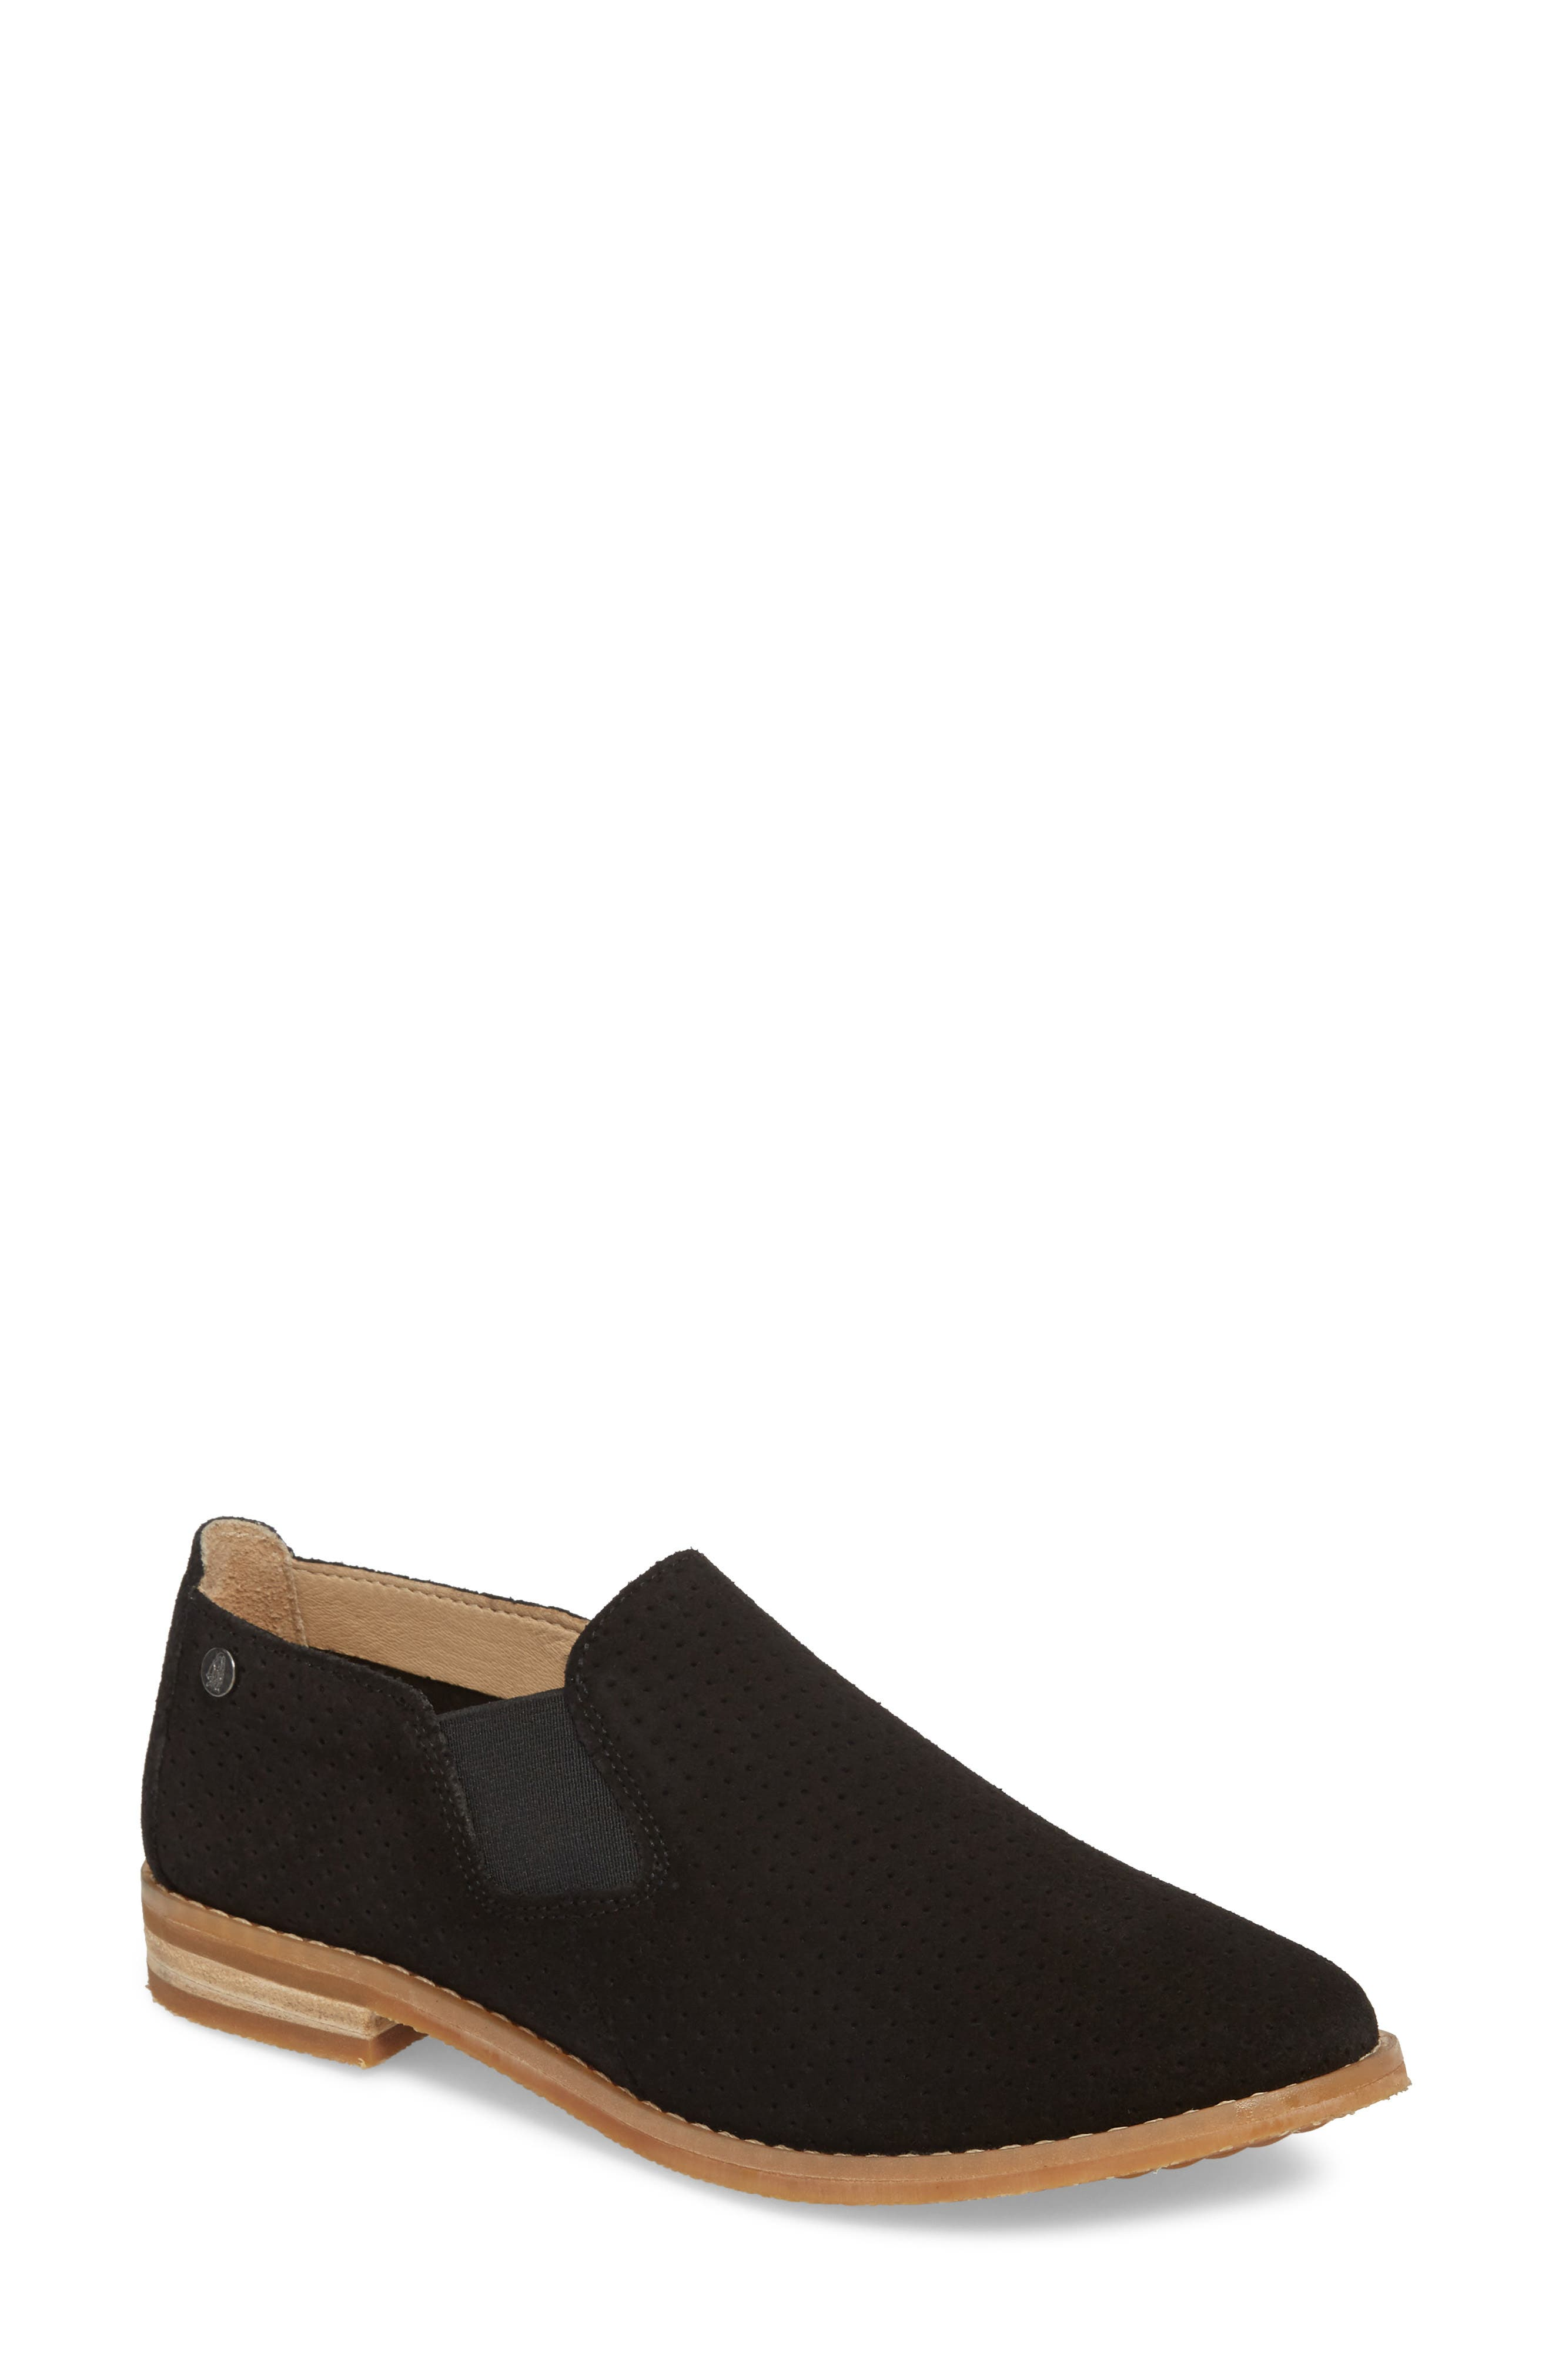 Hush Puppies Analise Clever Slip-On,                             Main thumbnail 1, color,                             Black Perforated Suede